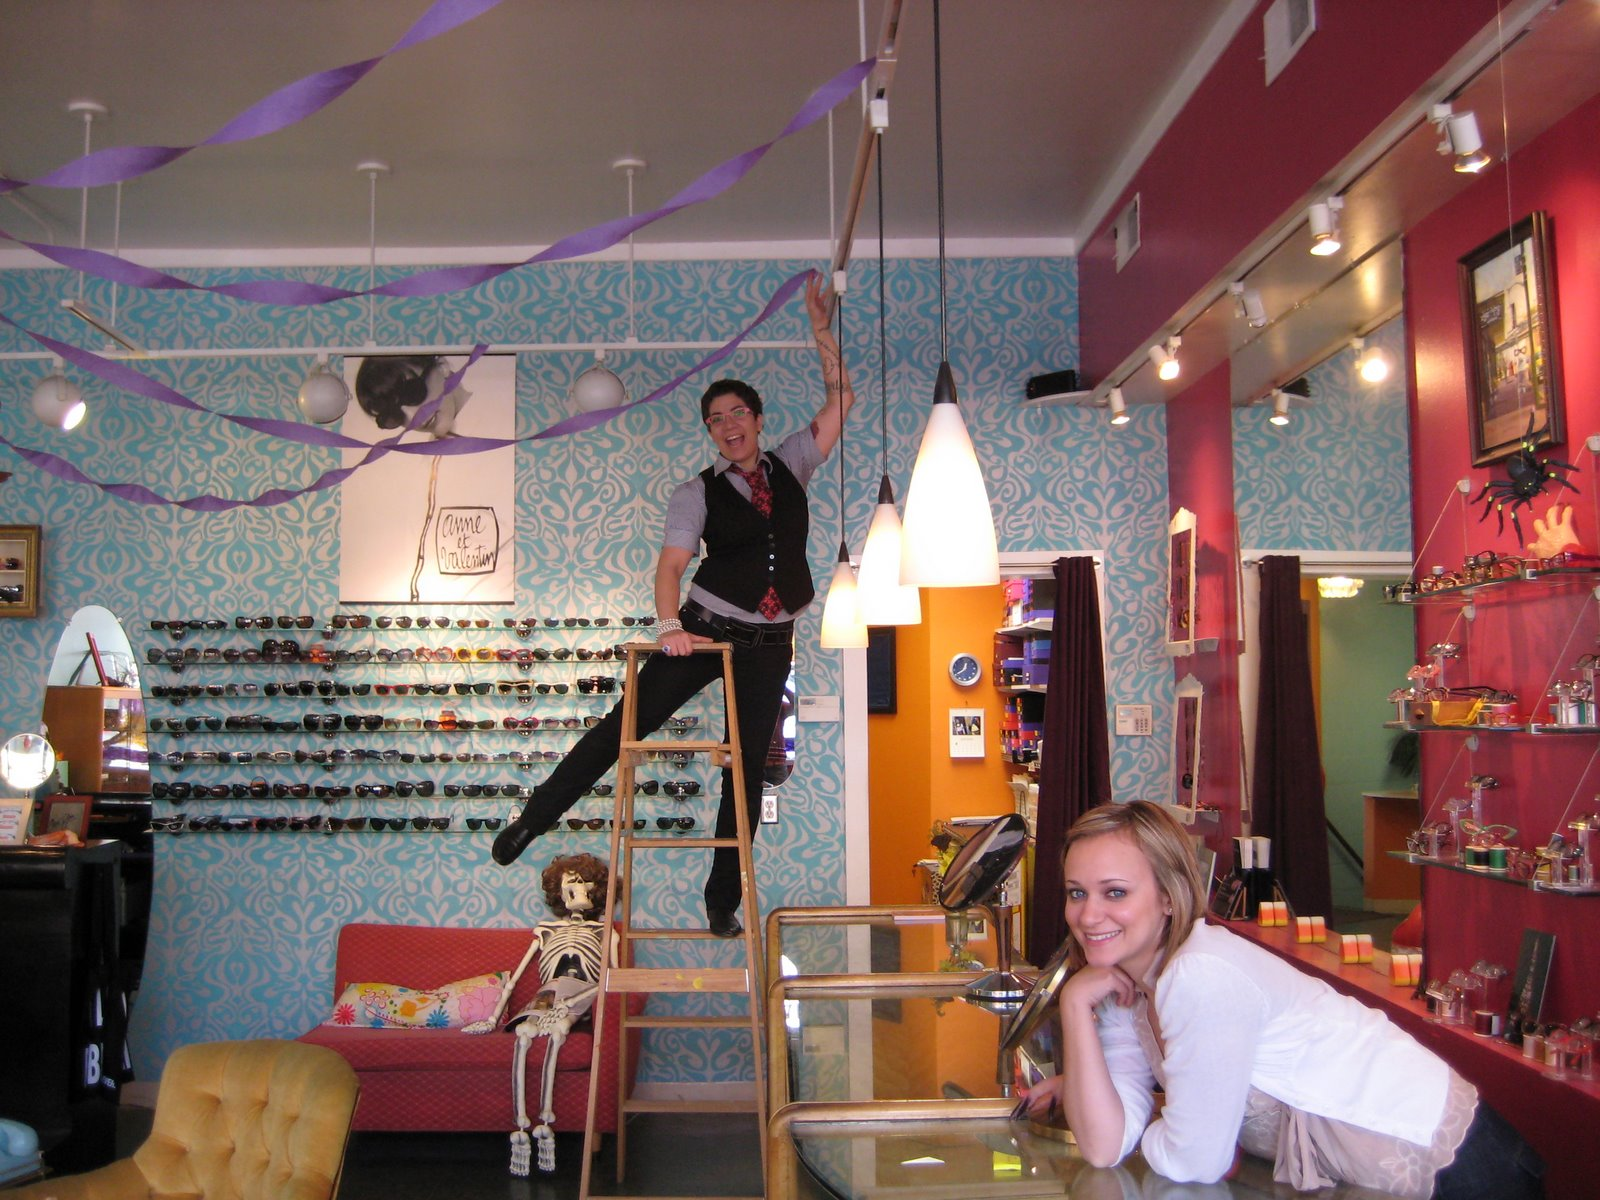 Decorating For A Party anniversary party! | eye spy optical